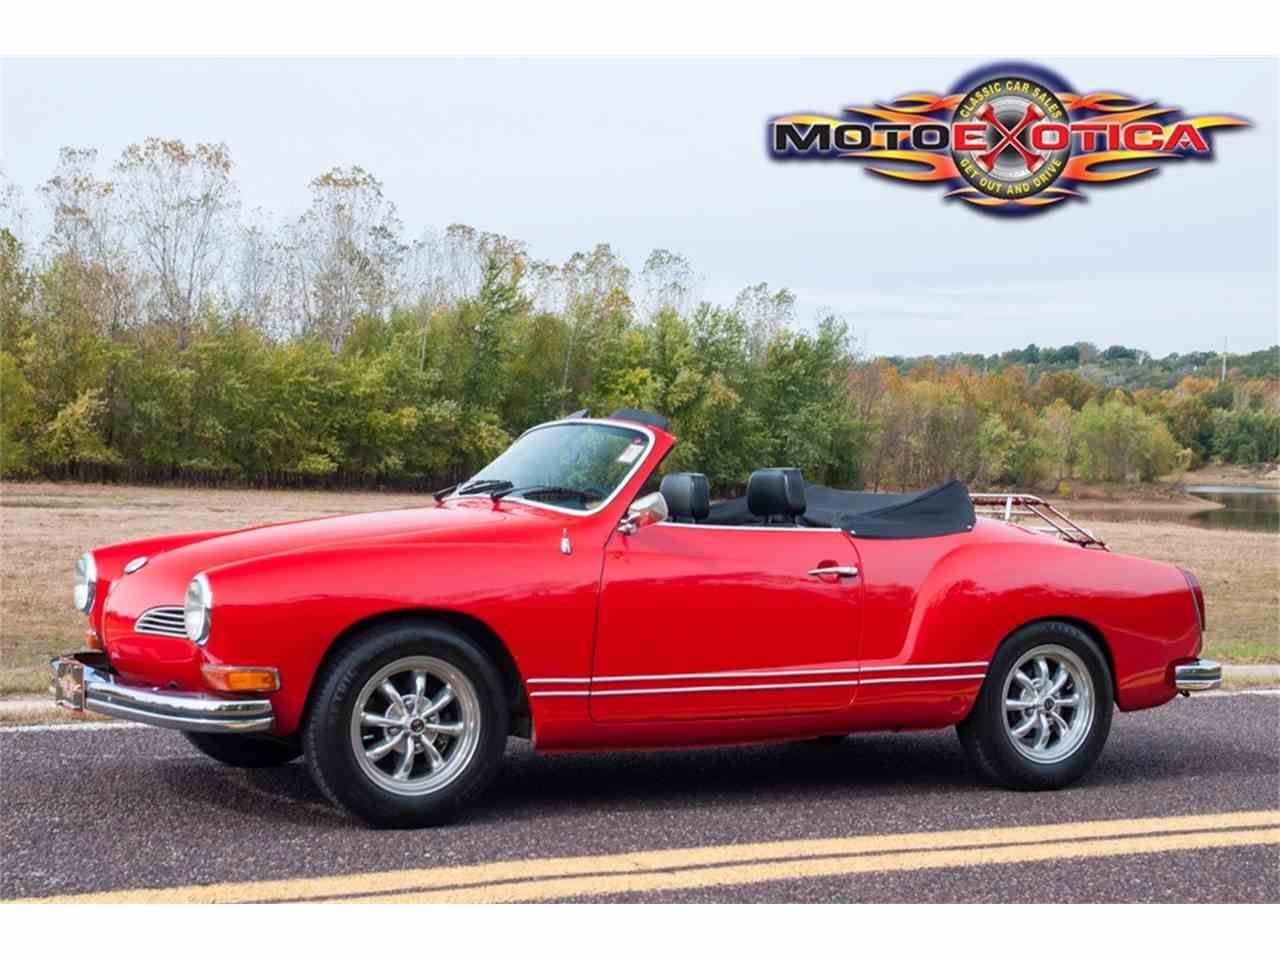 Large Picture of Classic '72 Volkswagen Karmann Ghia located in Missouri - $21,900.00 Offered by MotoeXotica Classic Cars - MB4C